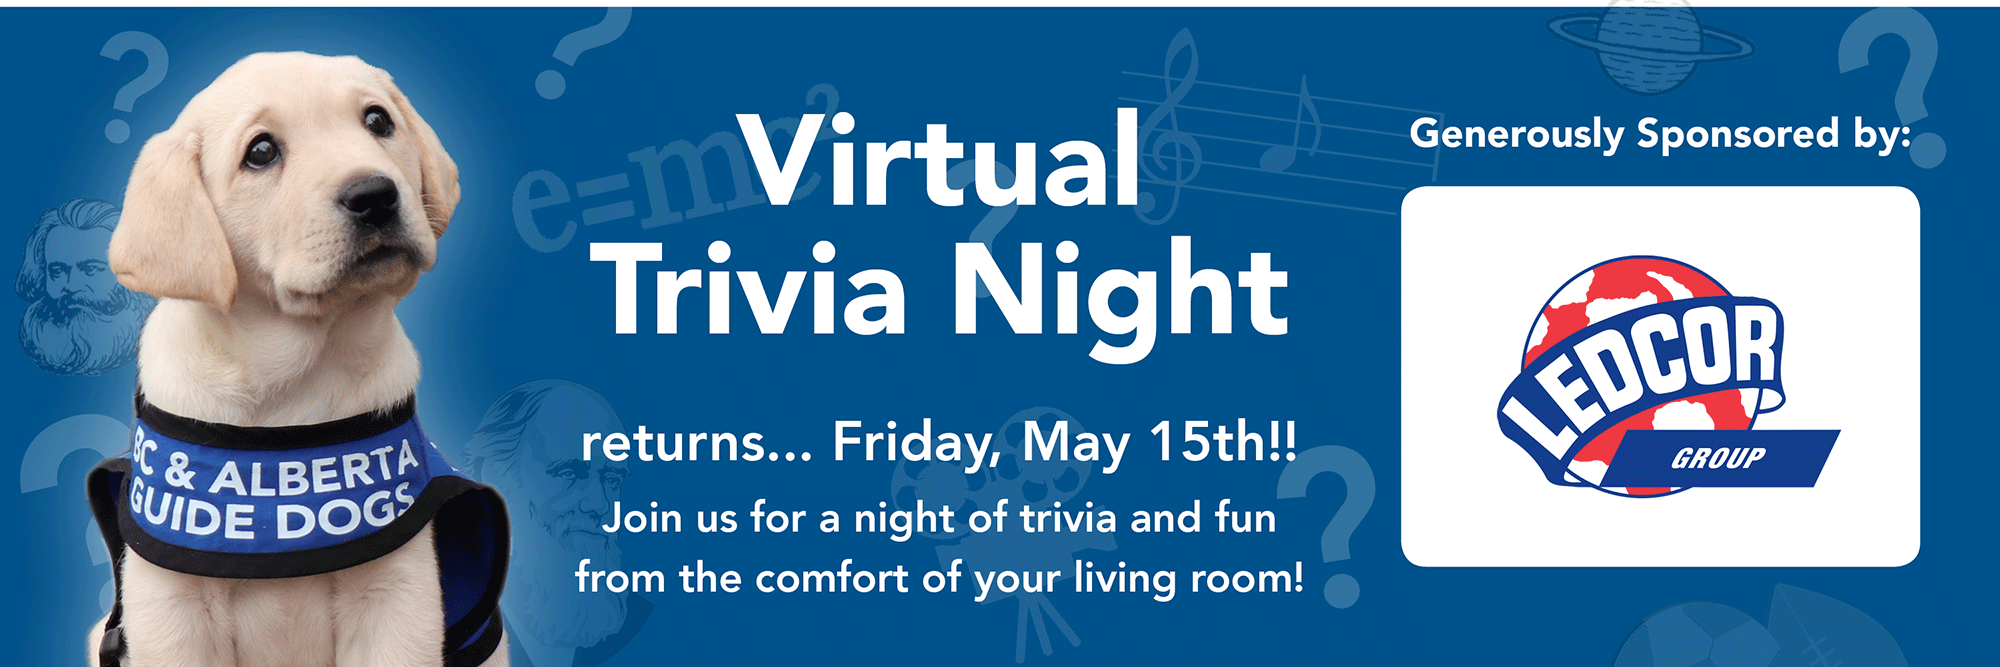 Virtual Trivia Night Returns on May 15, 2020!